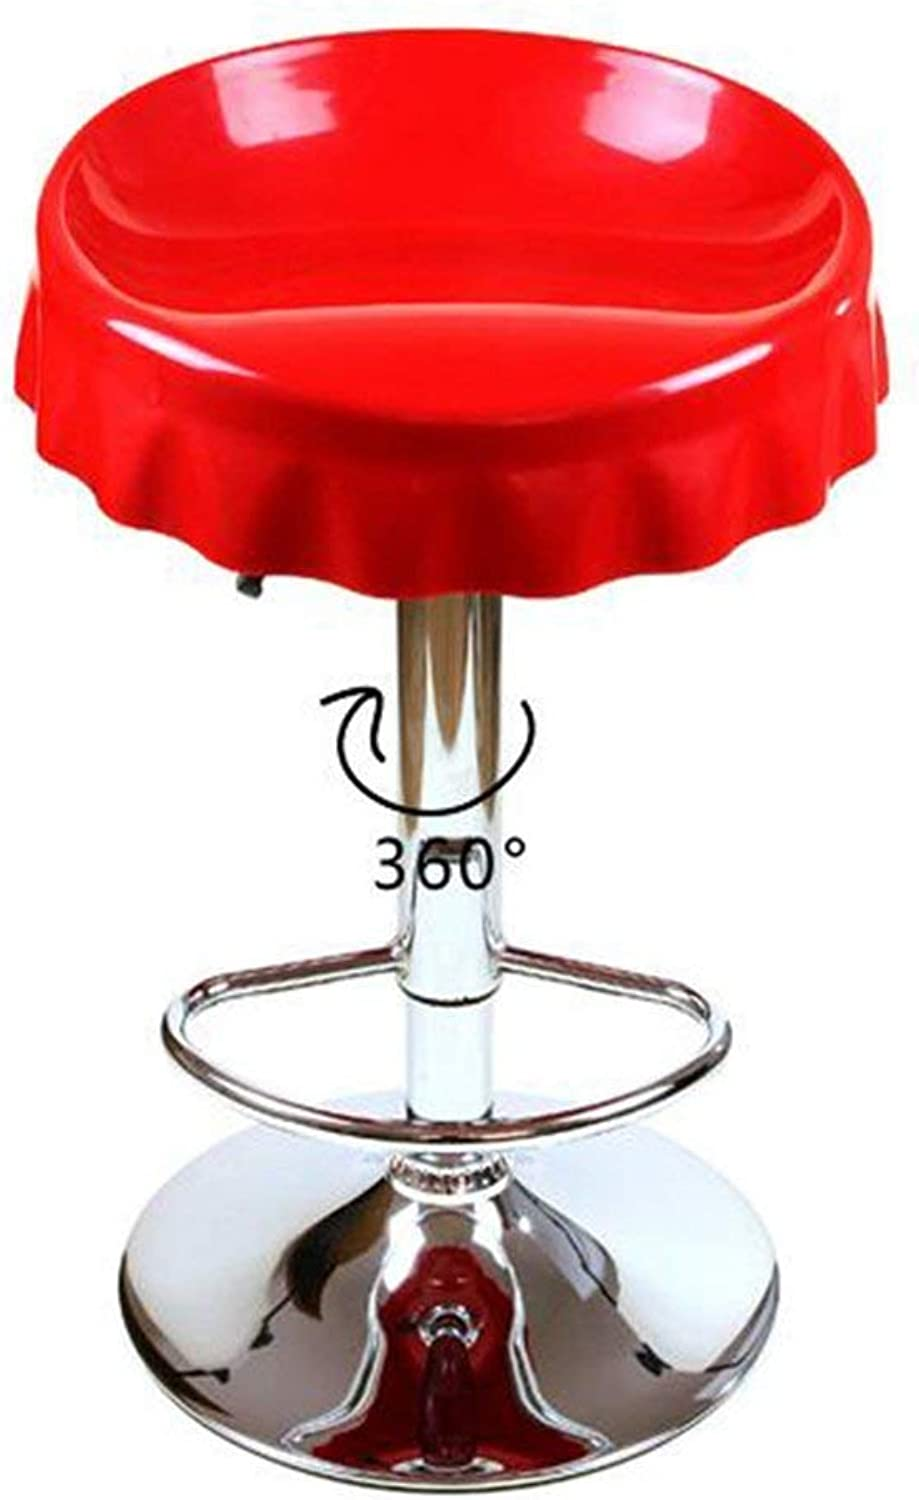 QTQZ Brisk- Simple and Stylish Chair Lift Chair European High Stool Barstool for Home Bars Sofa Stool (color Optional) (color  3)